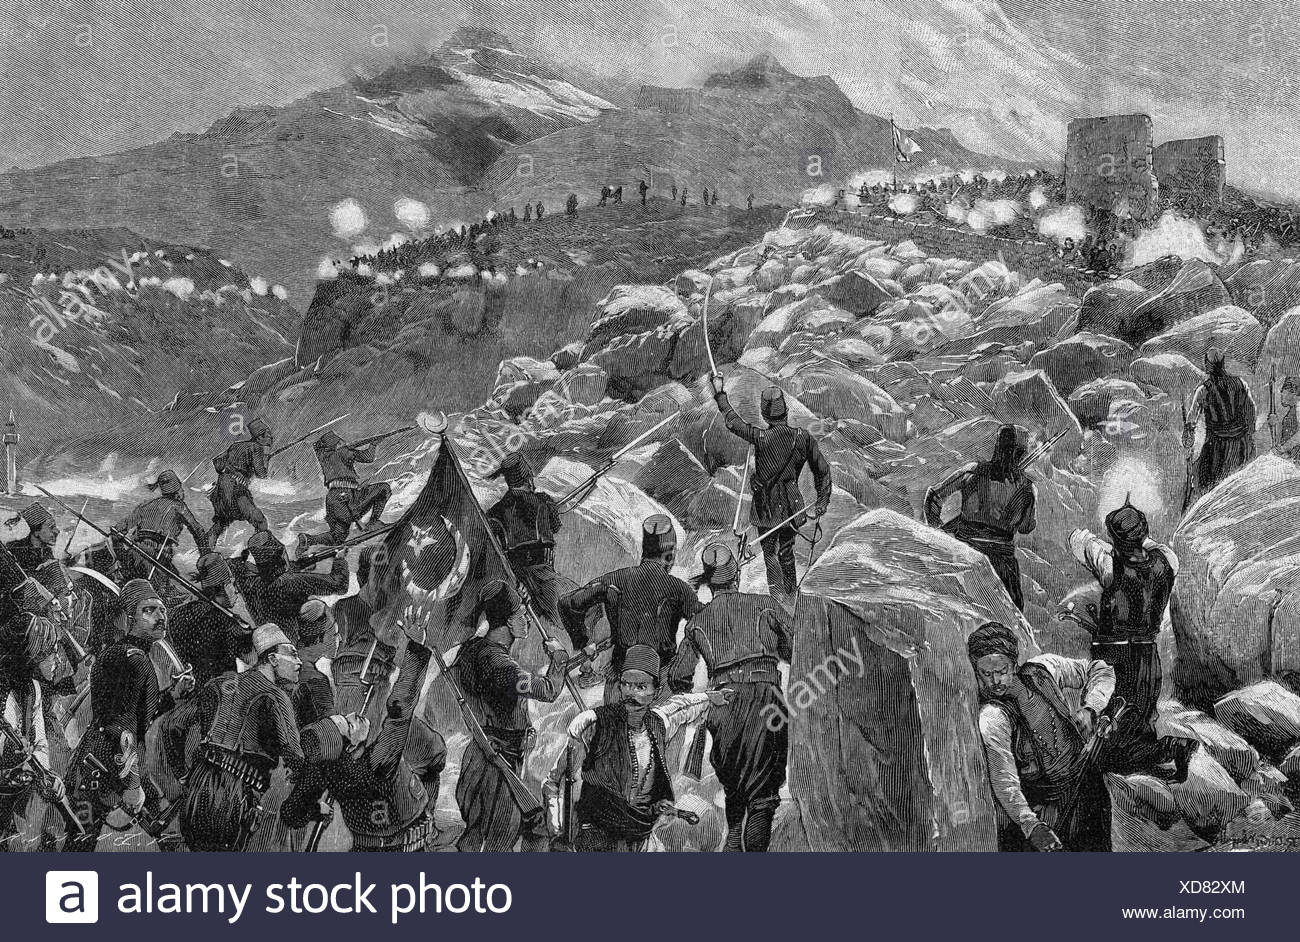 events, Cretian Insurrection 1896 - 1897, Turkish soldiers attacking a Cretian position, wood engraving, 1897, Crete, Greece, Ottoman empire, skirmish, mountains, 19th century, historic, historical, people, Additional-Rights-Clearances-NA - Stock Image